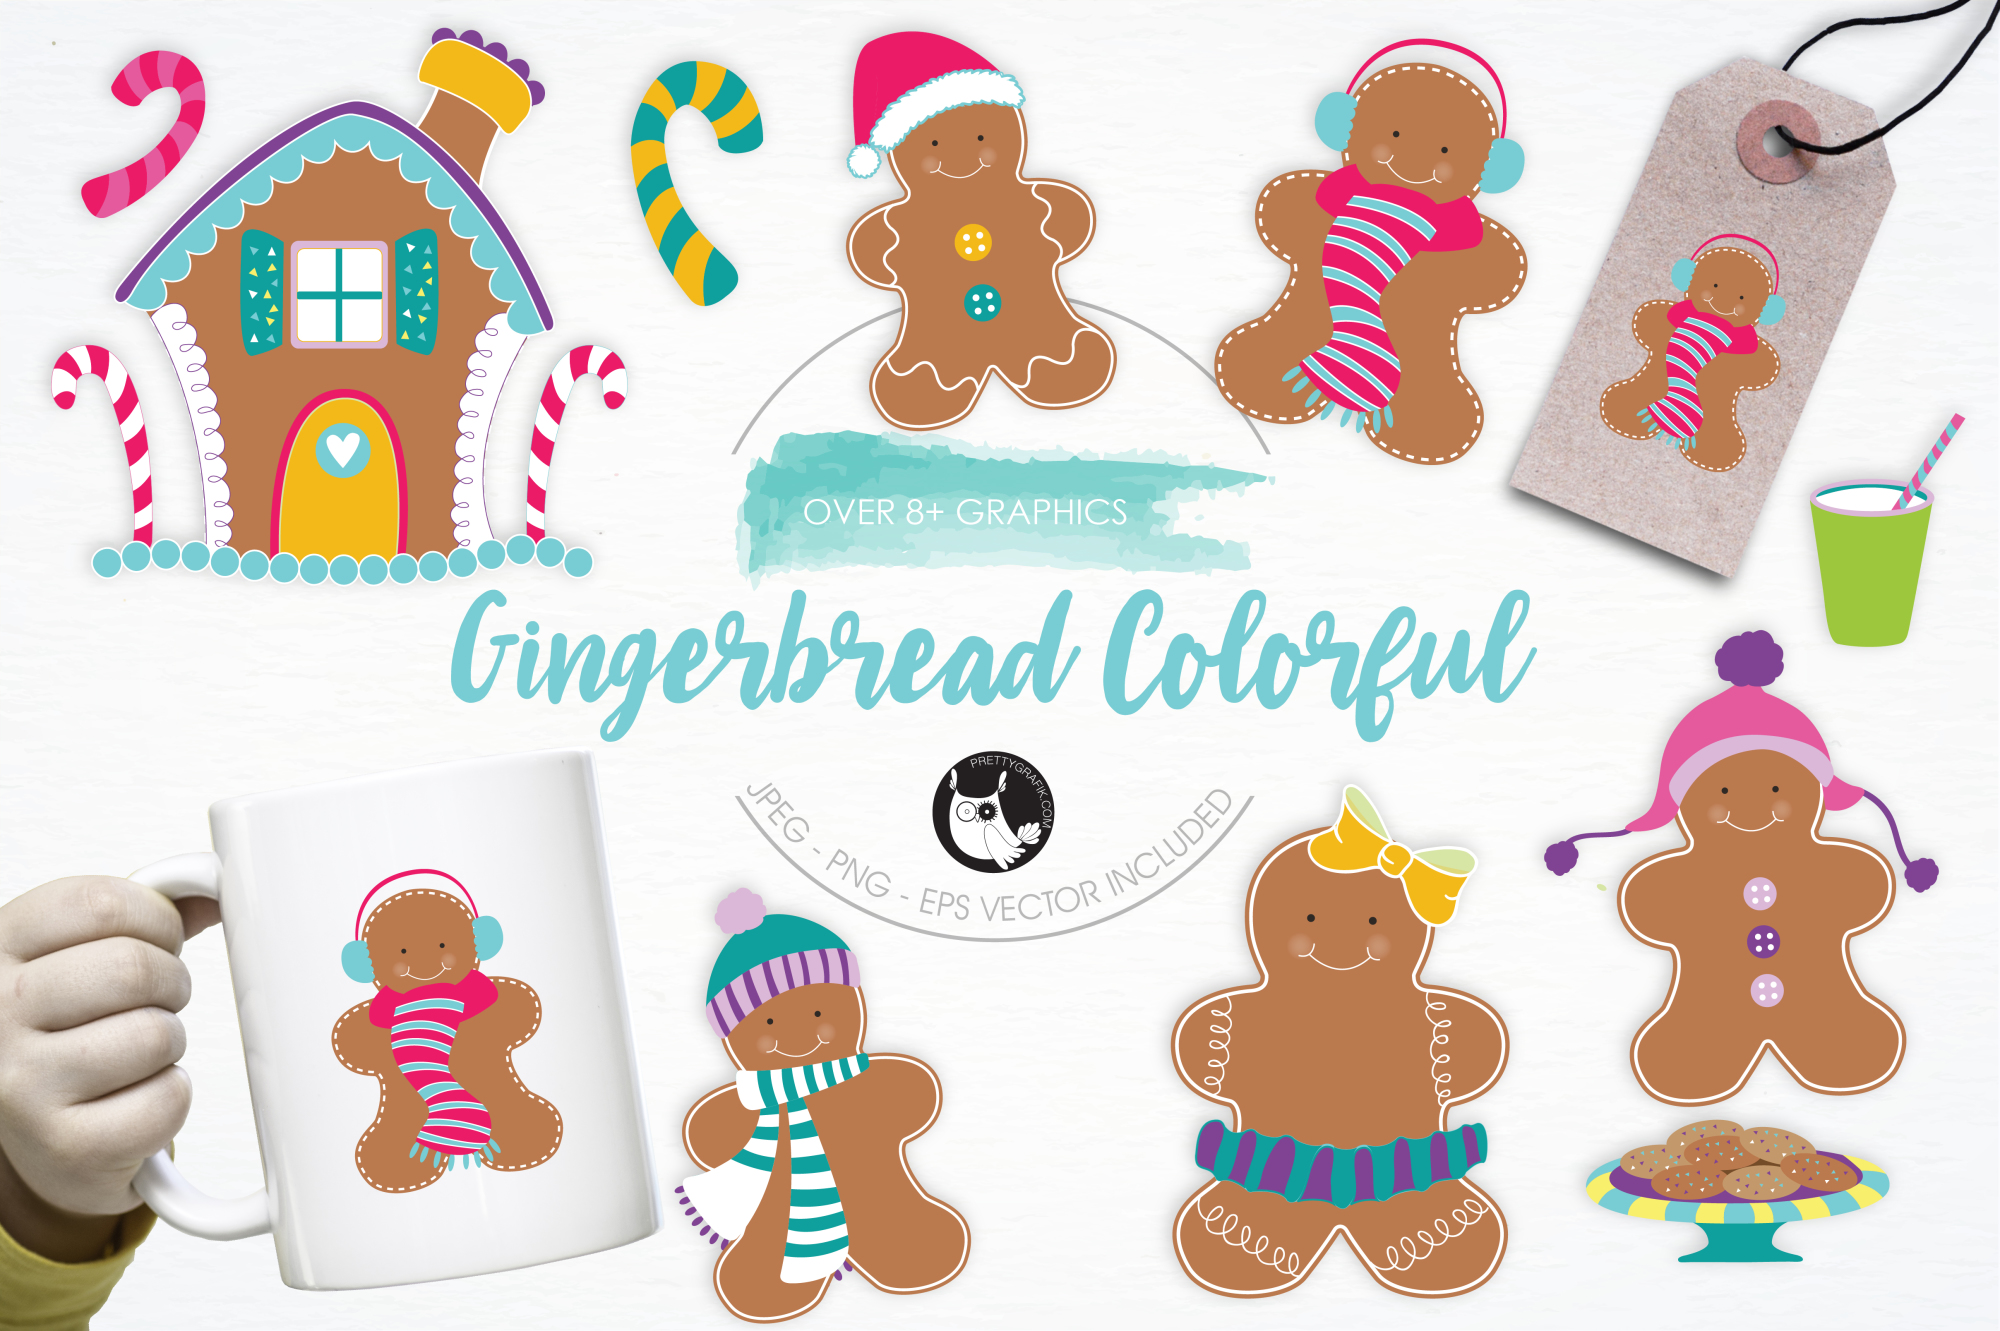 Gingerbread Colorful graphics and illustrations example image 1